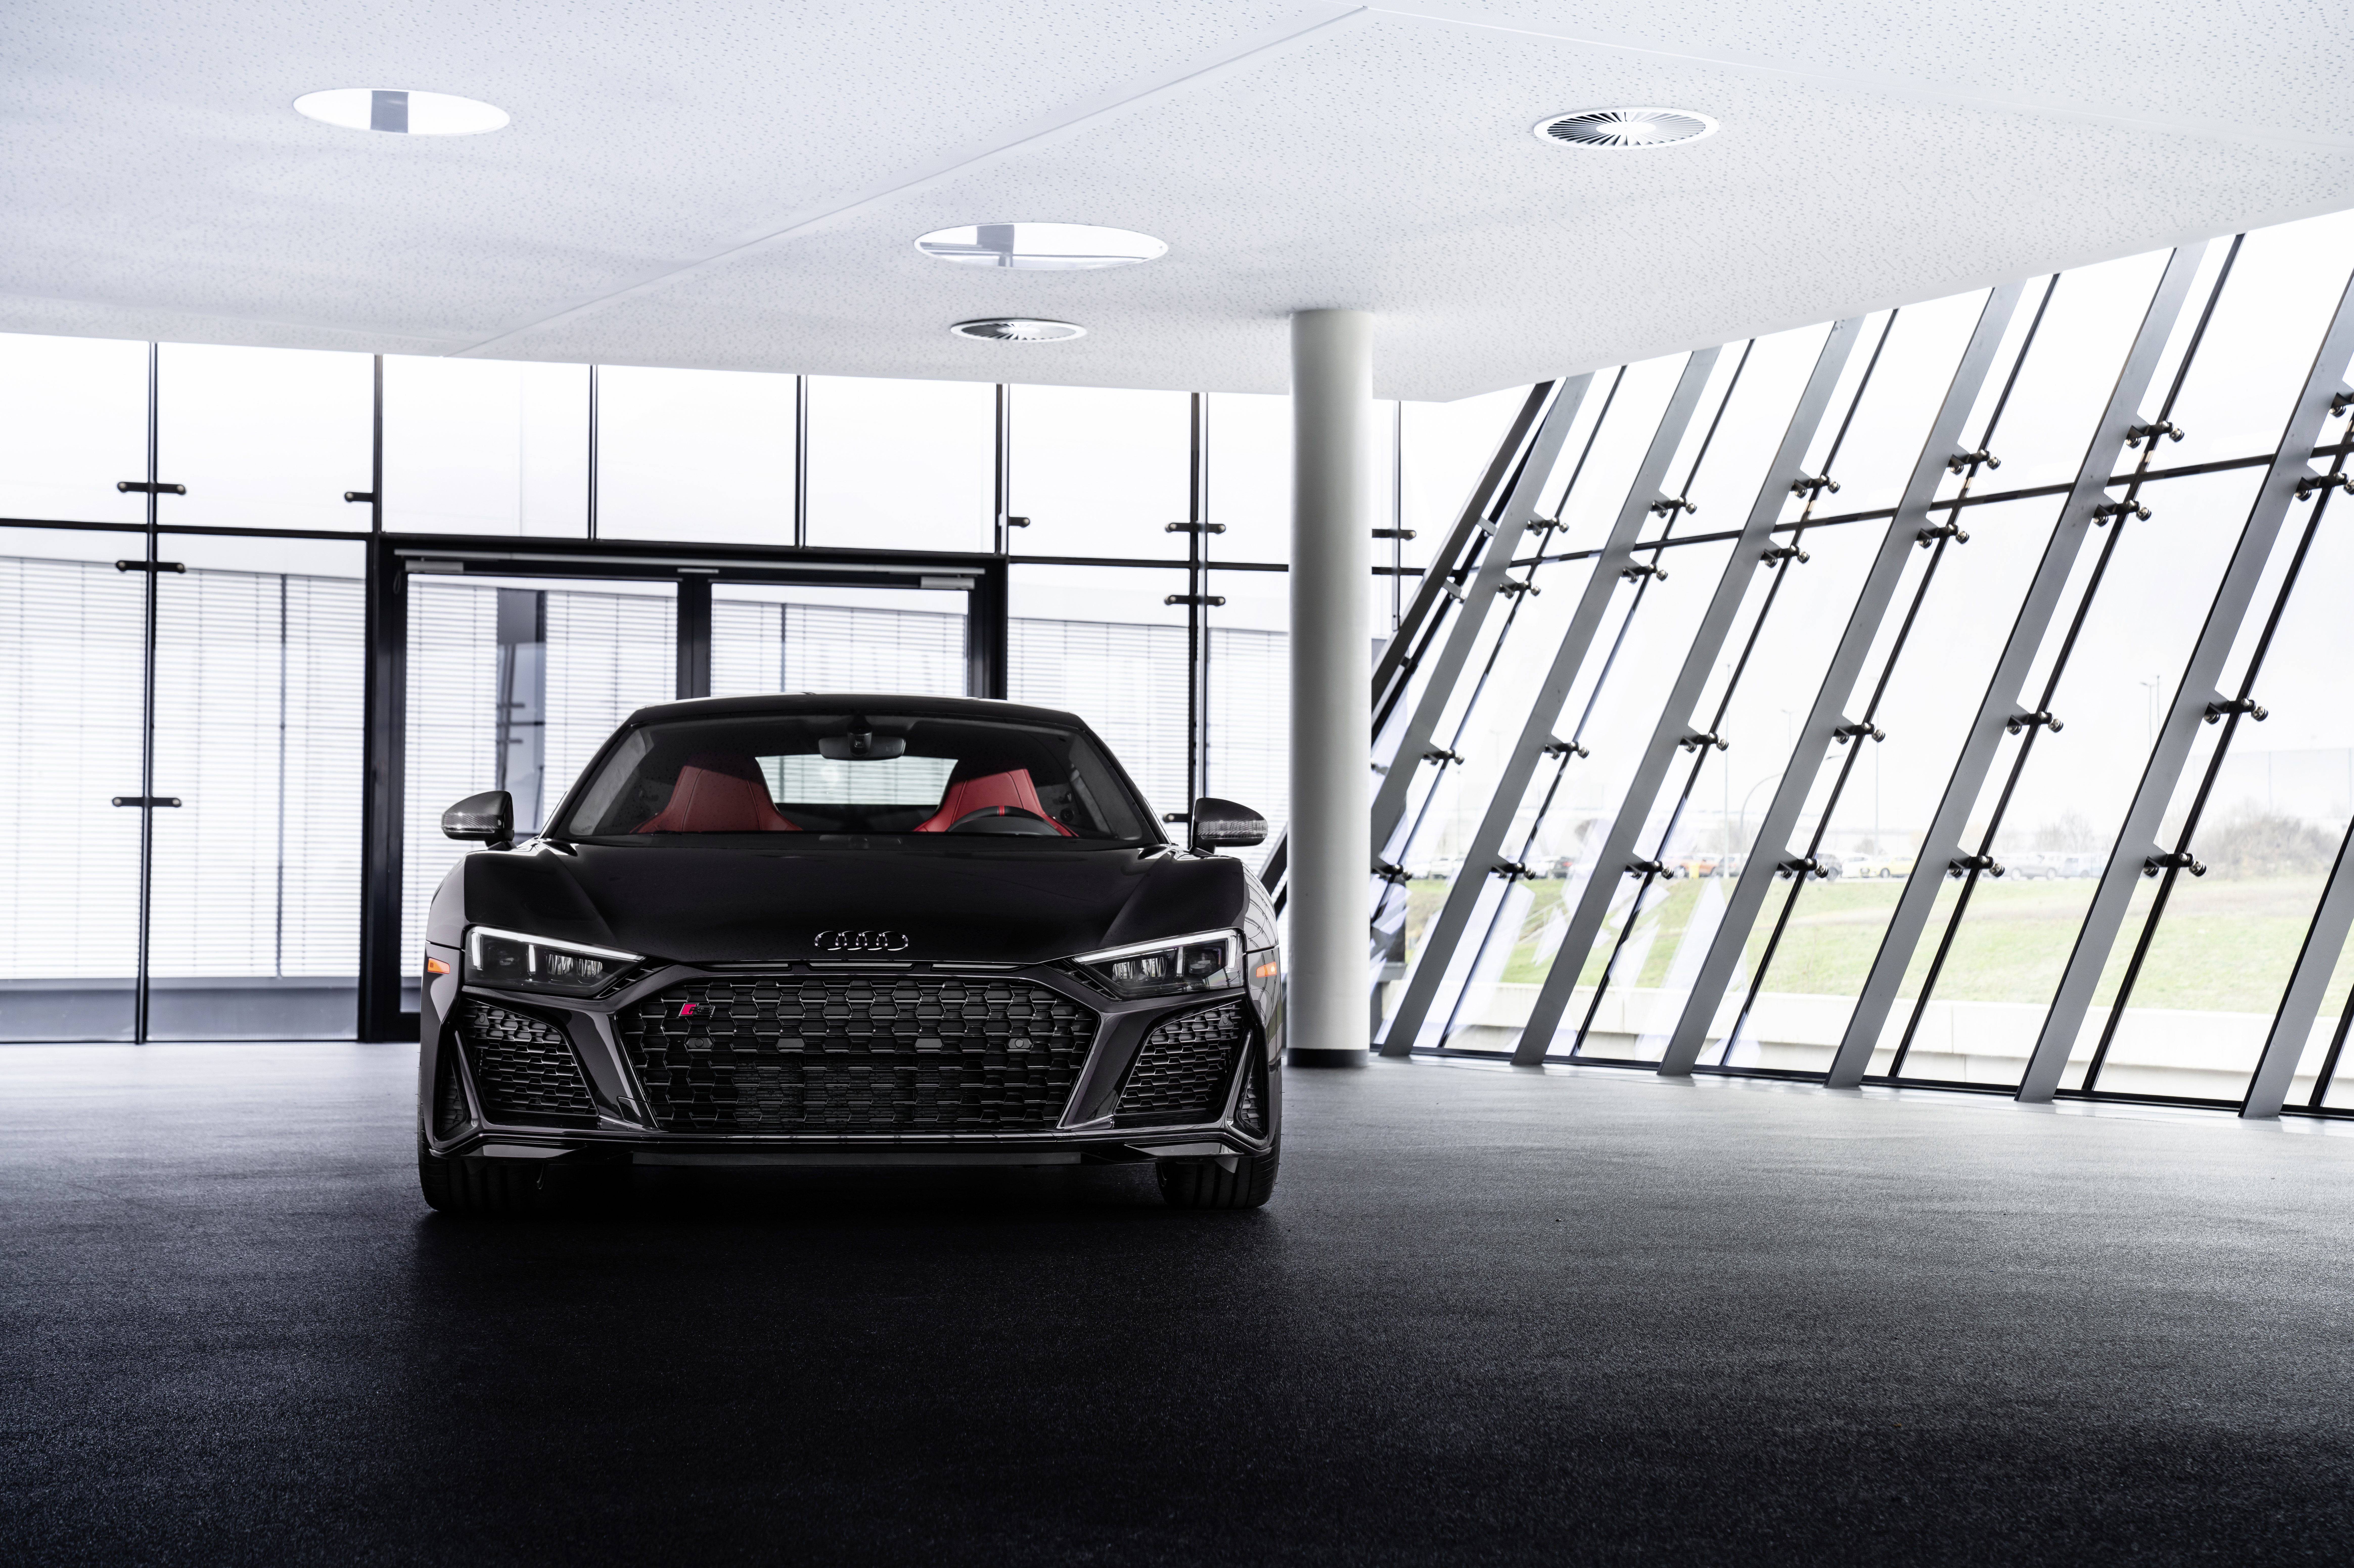 2021 audi r8 rwd panther edition front look 4k 1608916731 - 2021 Audi R8 RWD Panther Edition Front Look 4k - 2021 Audi R8 RWD Panther Edition Front Look 4k wallpapers